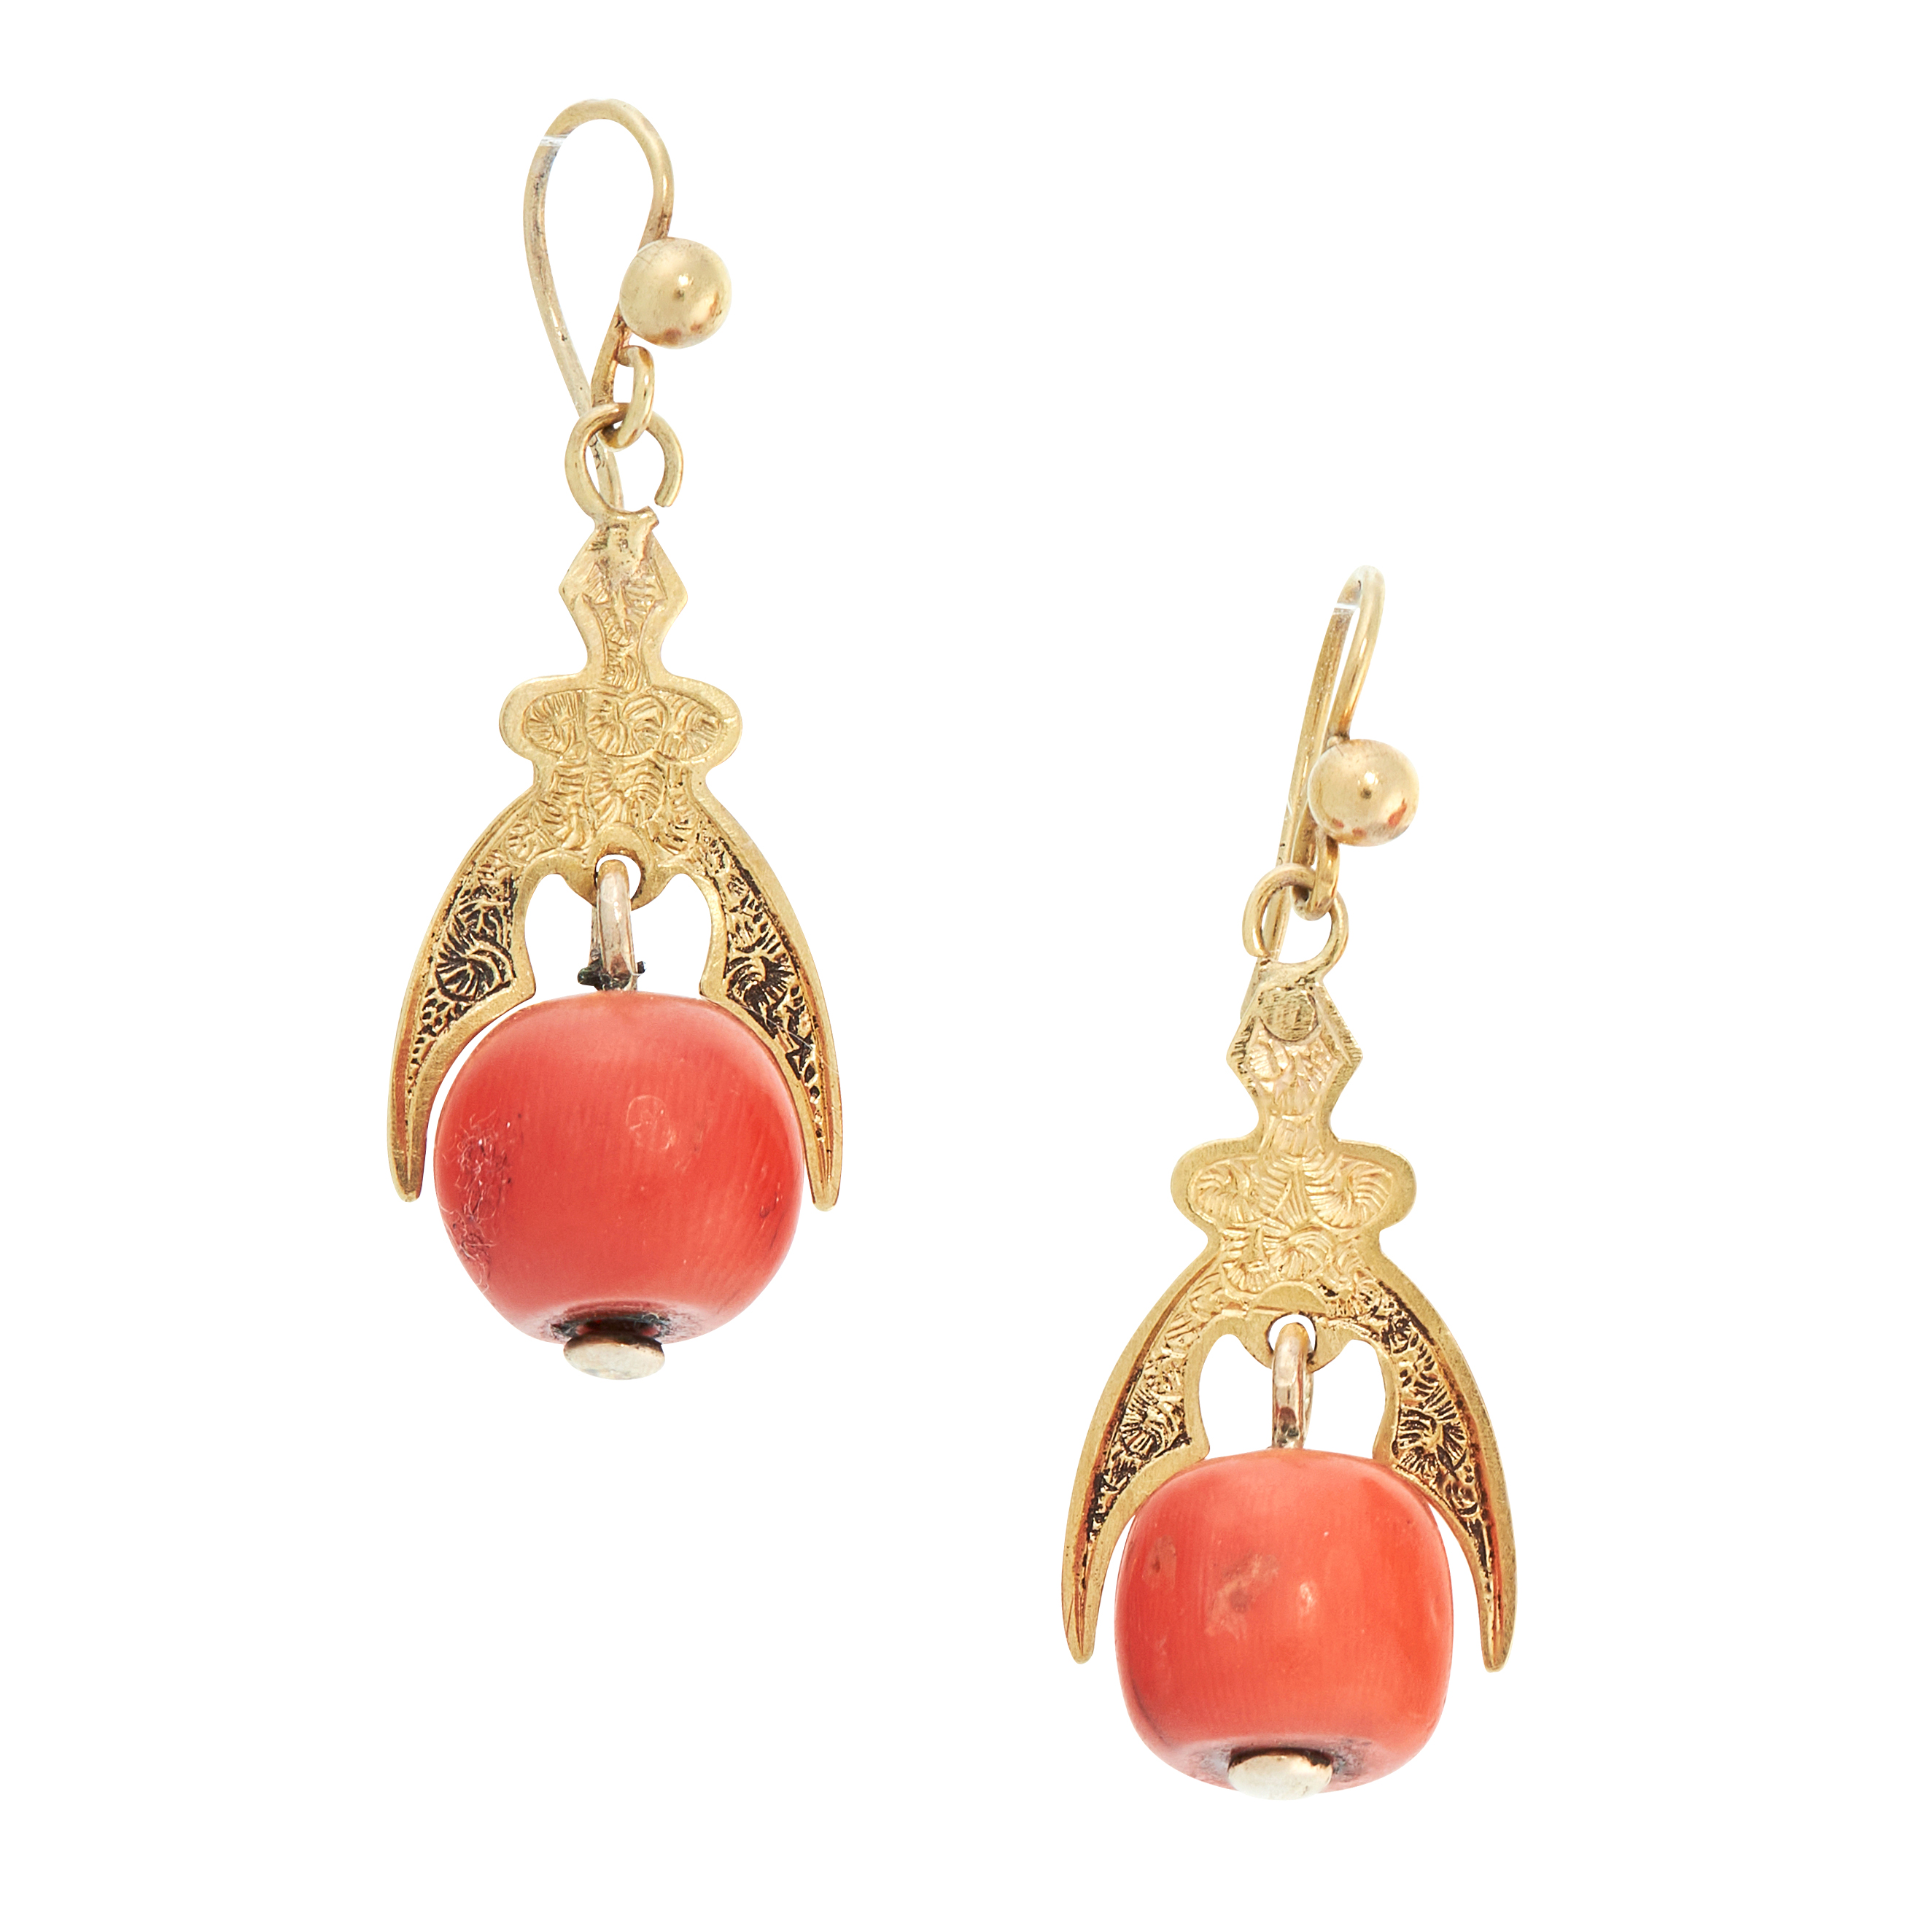 A PAIR OF ANTIQUE CORAL DROP EARRINGS, 19TH CENTURY in high carat yellow gold, each set with a